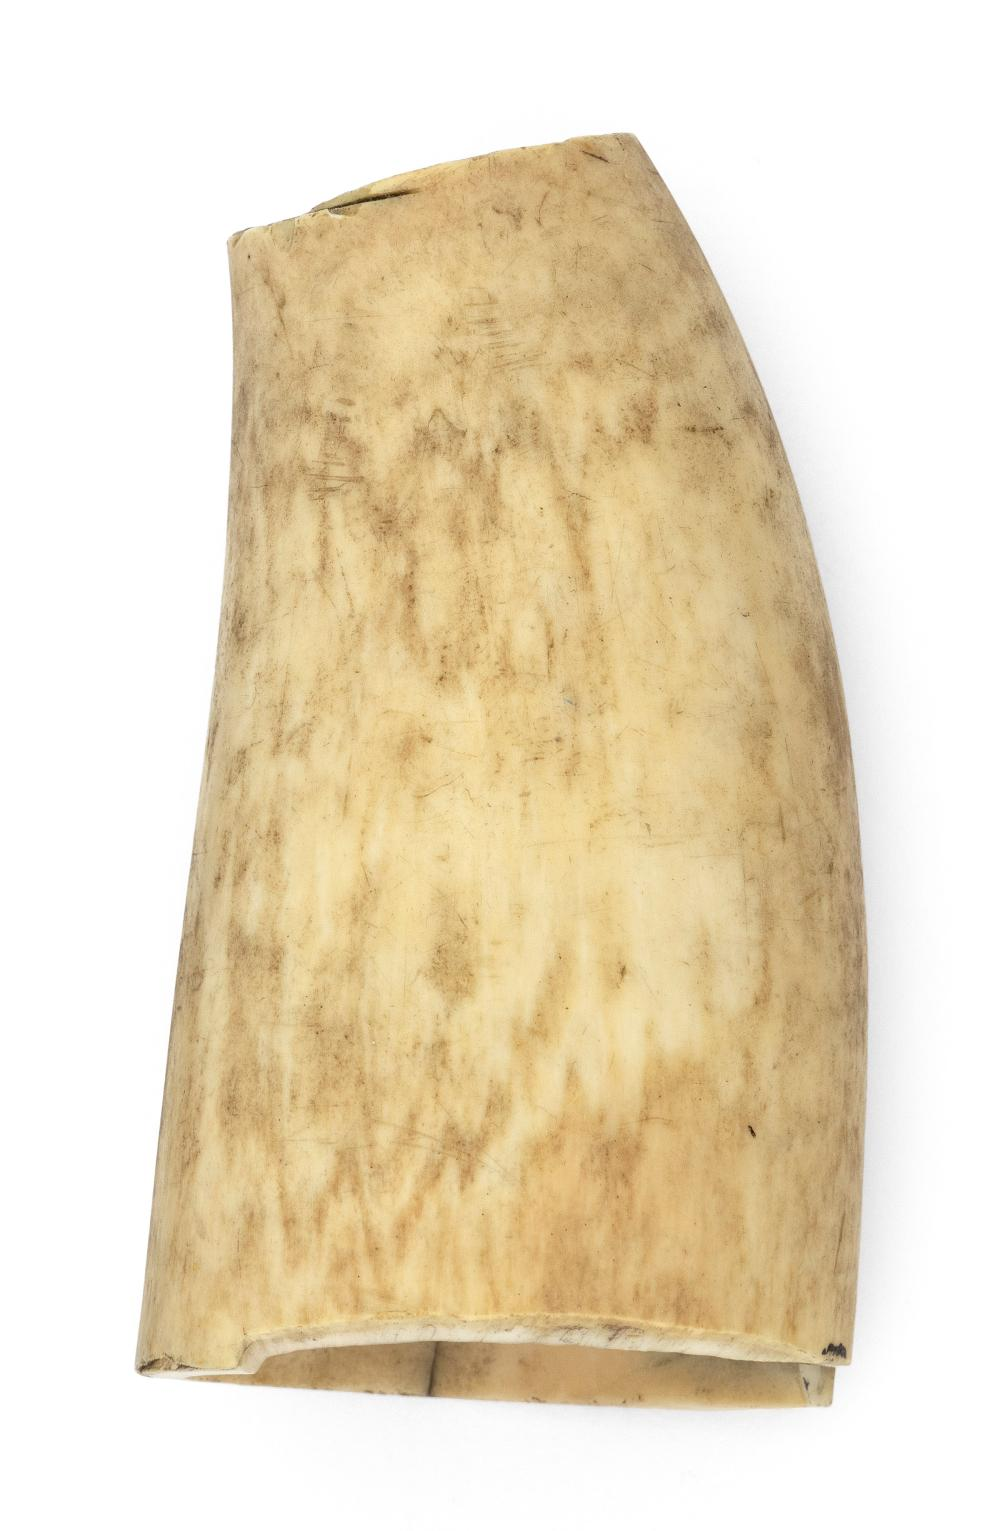 SCRIMSHAW WHALE'S TOOTH 19th Century Length 4